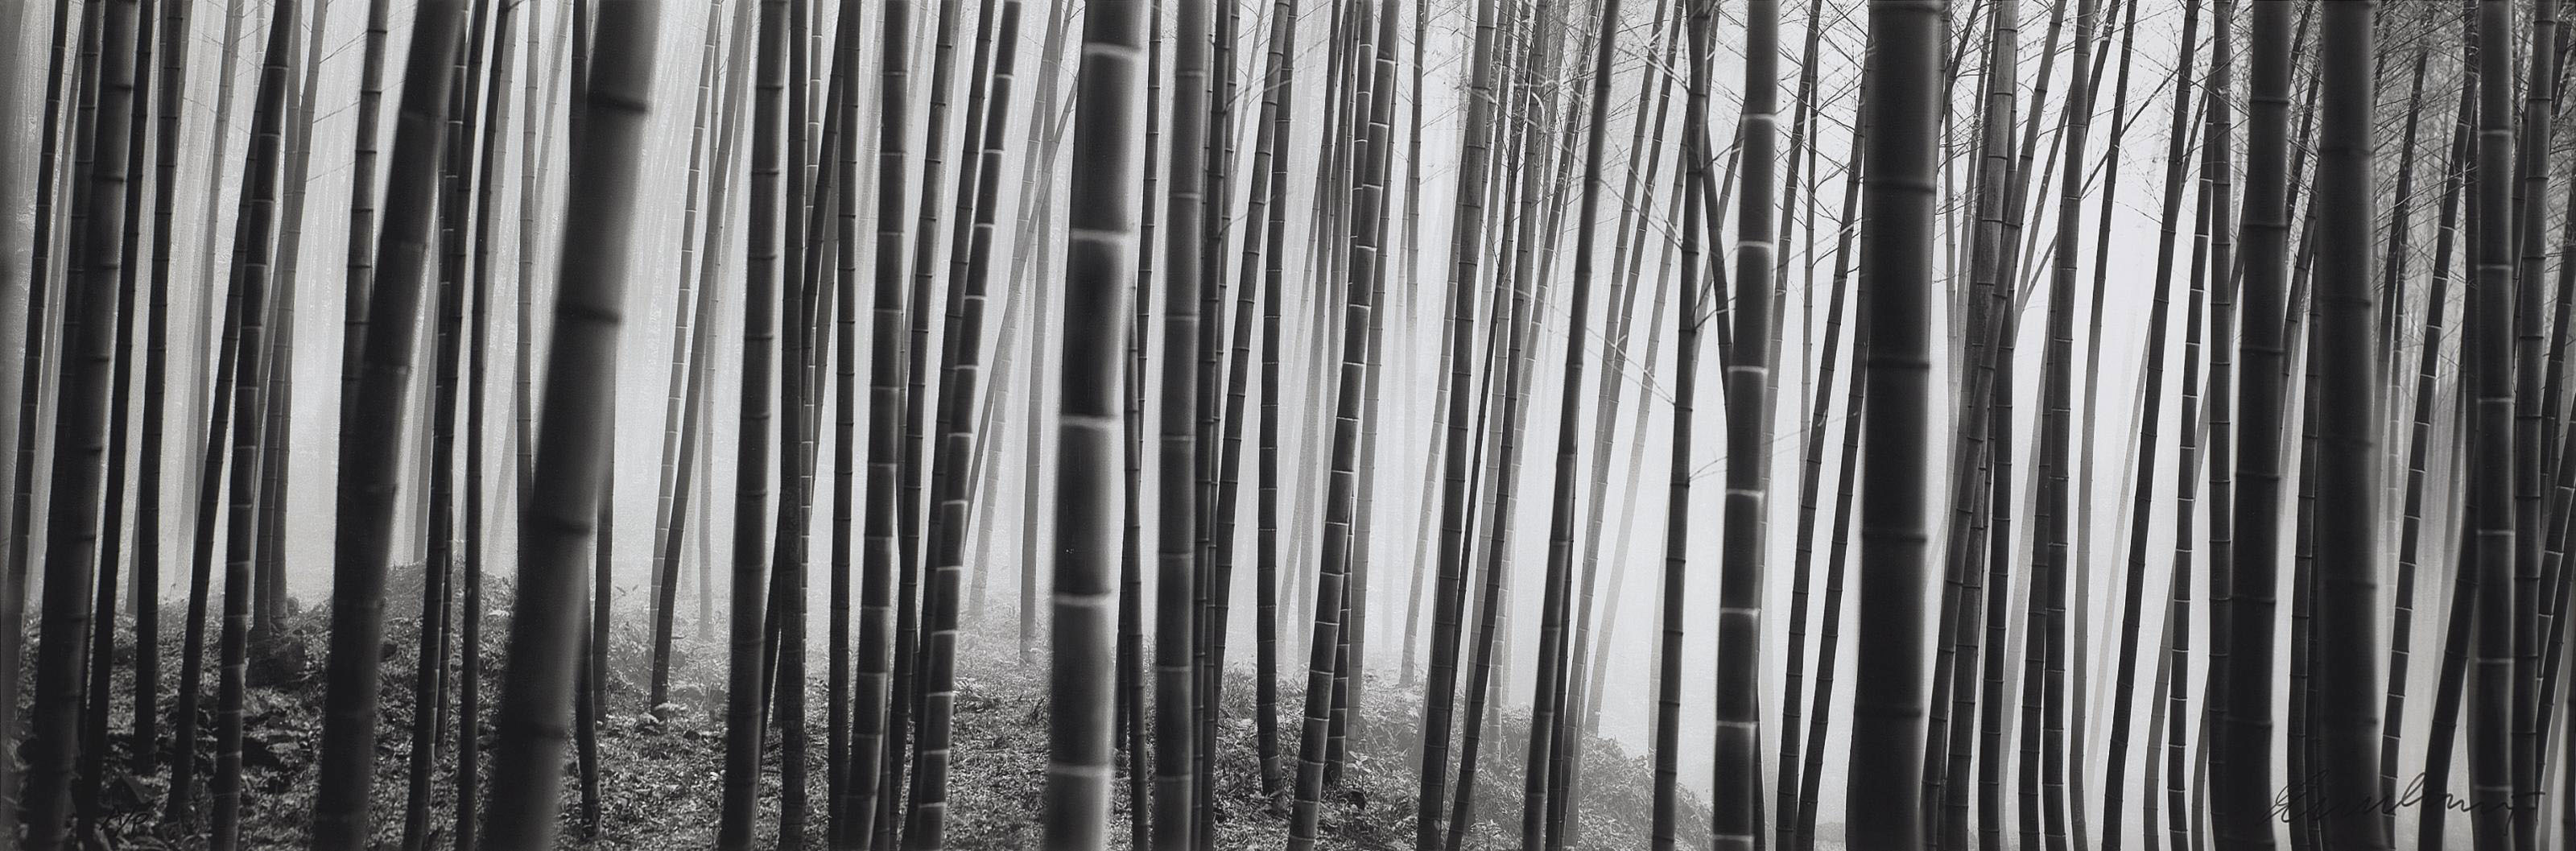 Kyoto Bamboo Forest, 2003